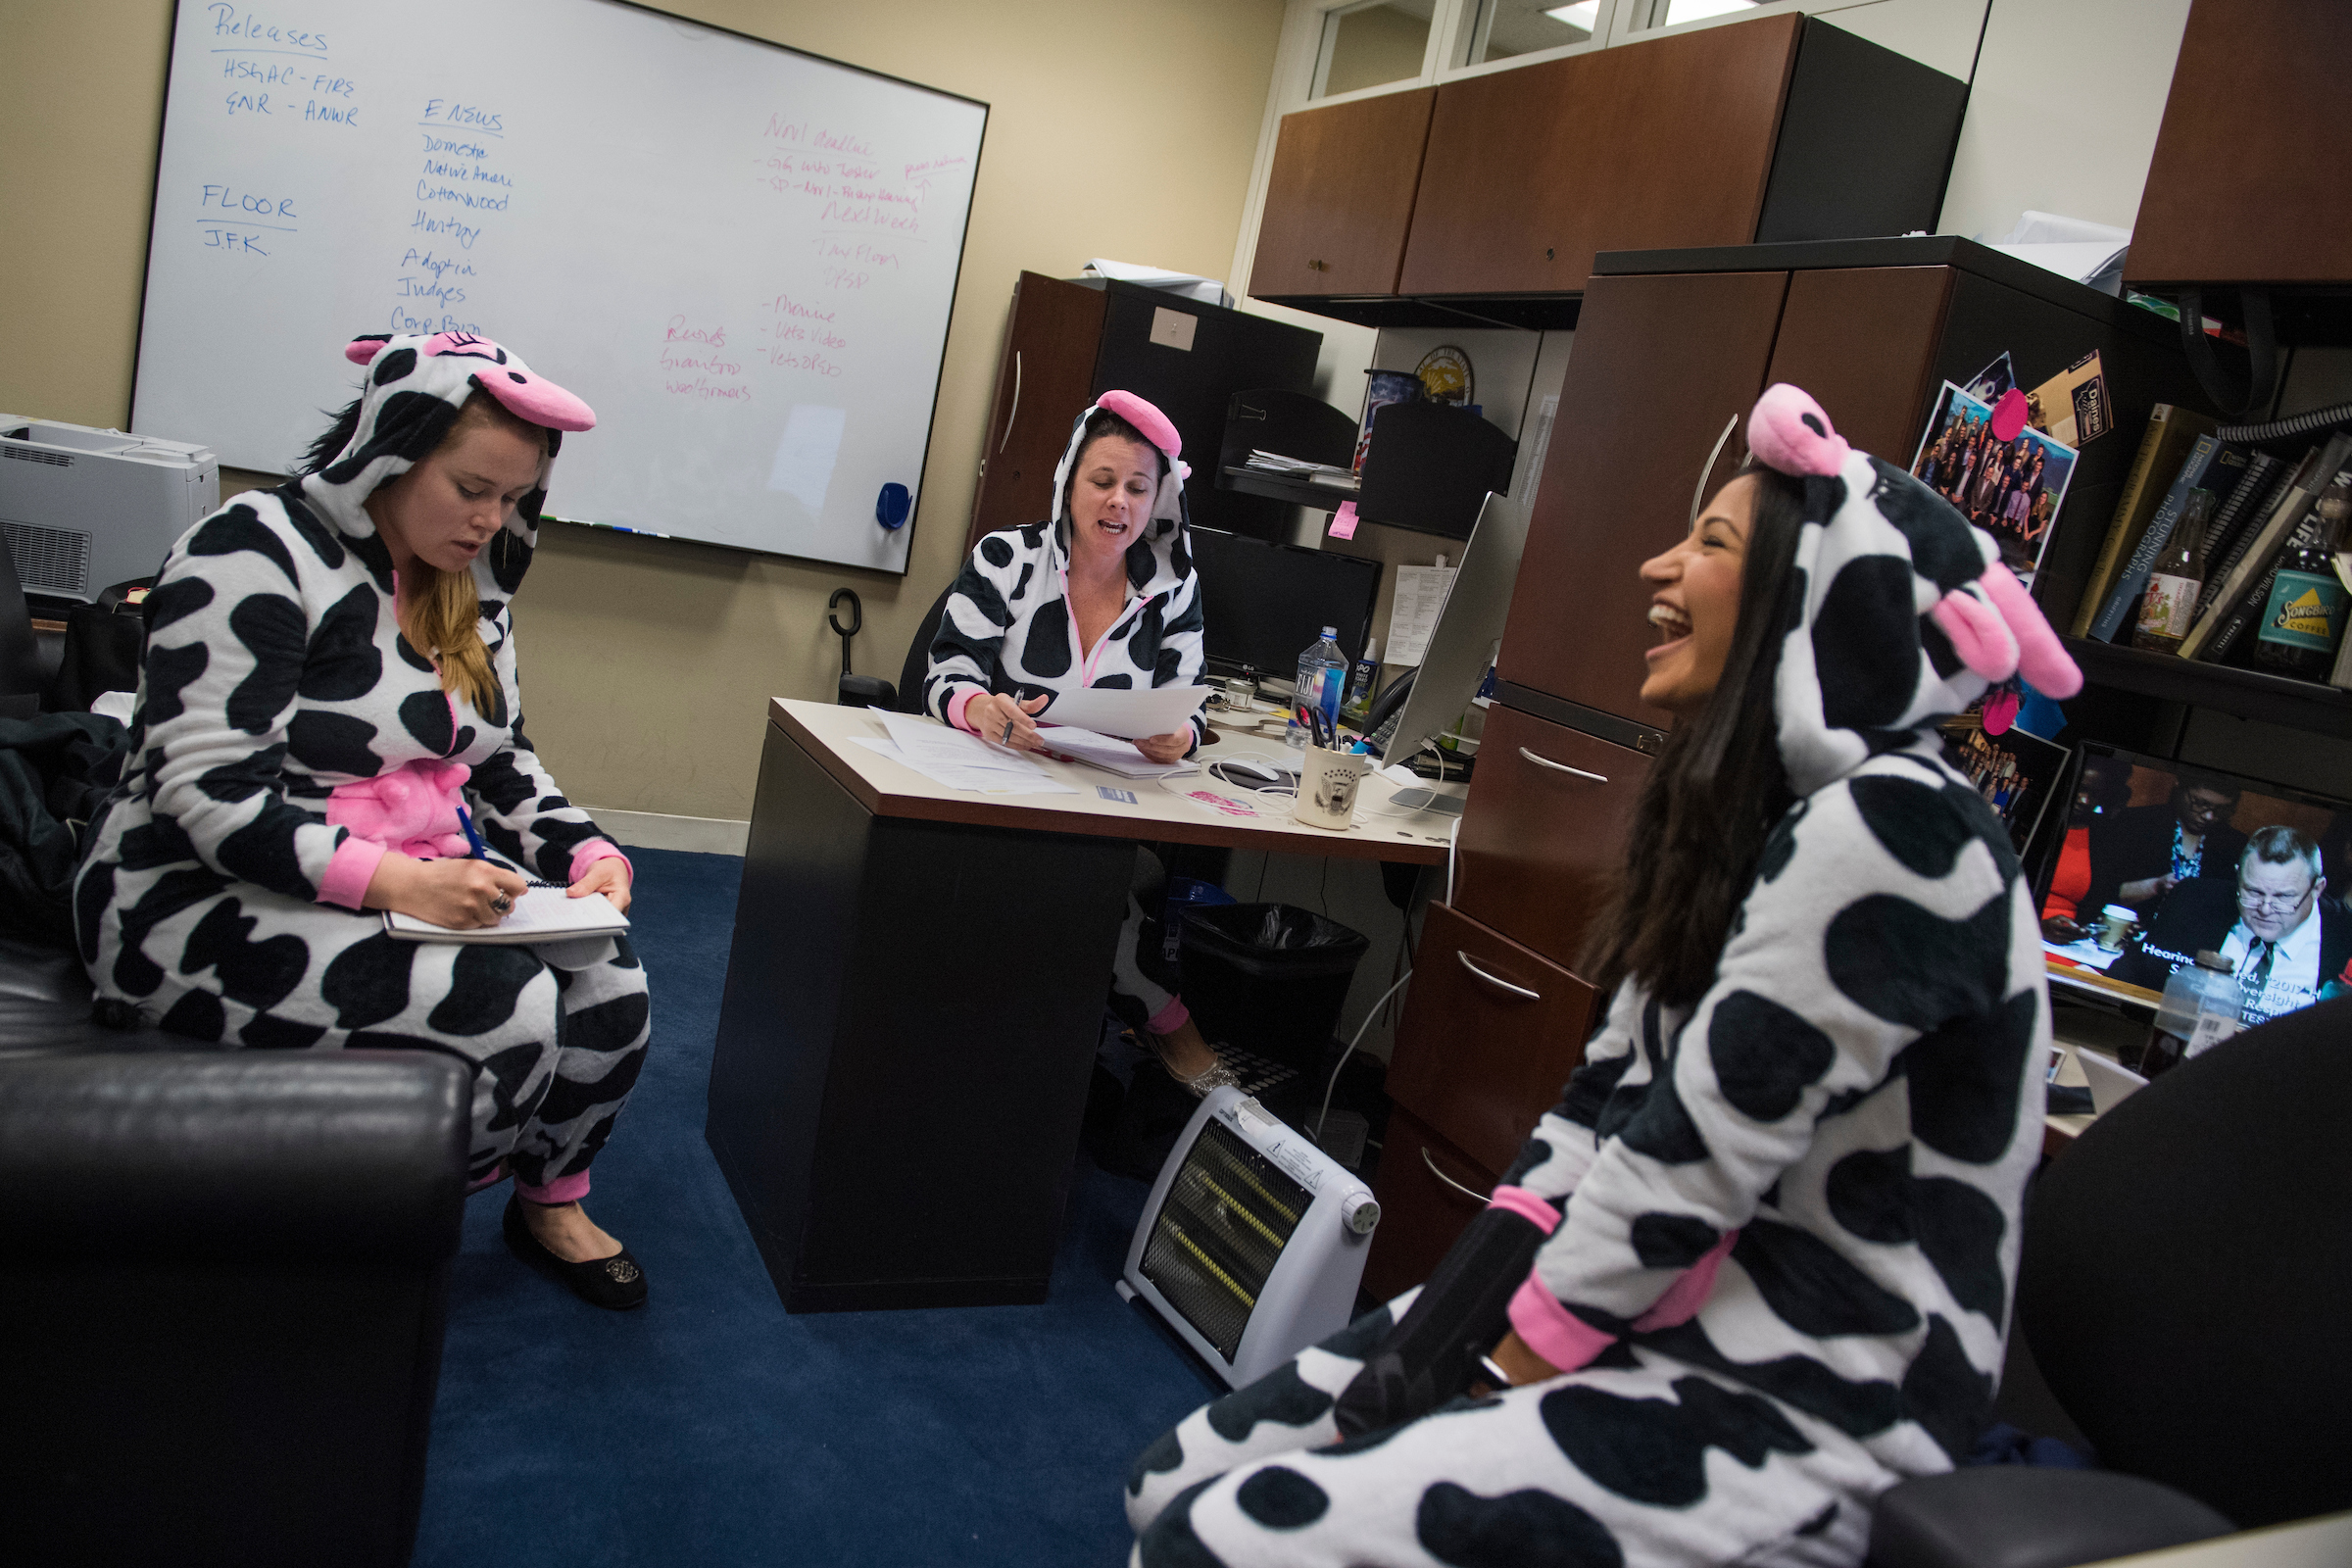 UNITED STATES - OCTOBER 31: Aides for Sen. Steve Daines, R-Mont., from left, Lindsay Black, Marcie Kinzel, and Katie Waldman, are seen in their Halloween costumes in Hart Building on October 31, 2017. The three represent the 3 cows to 1 person population in Montana. (Photo By Tom Williams/CQ Roll Call)